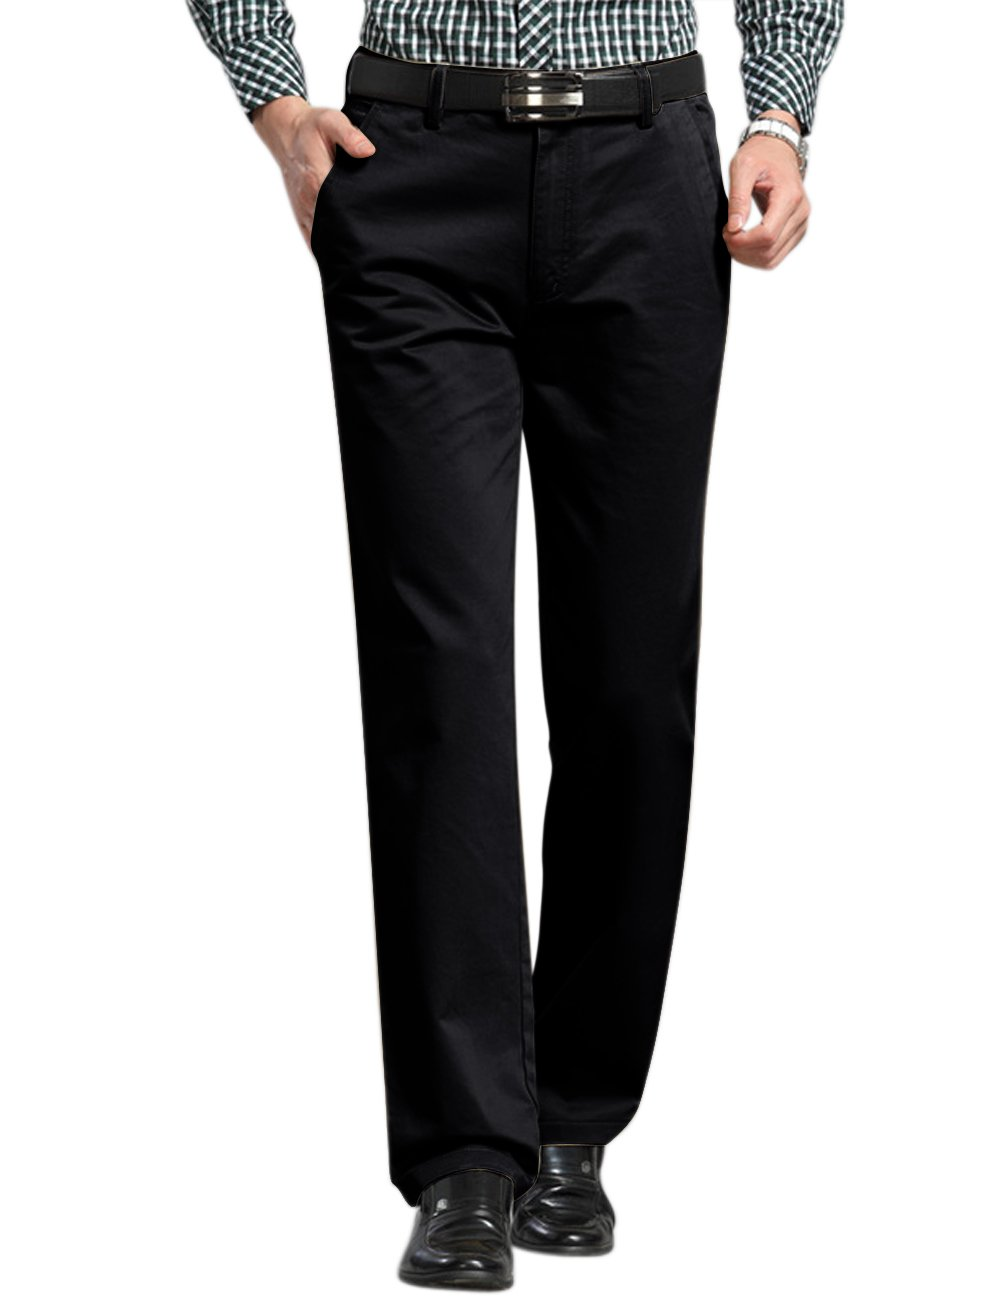 Match Men's Straight Leg Flat Front Casual Pants (36W x 31L, 8131 Black)